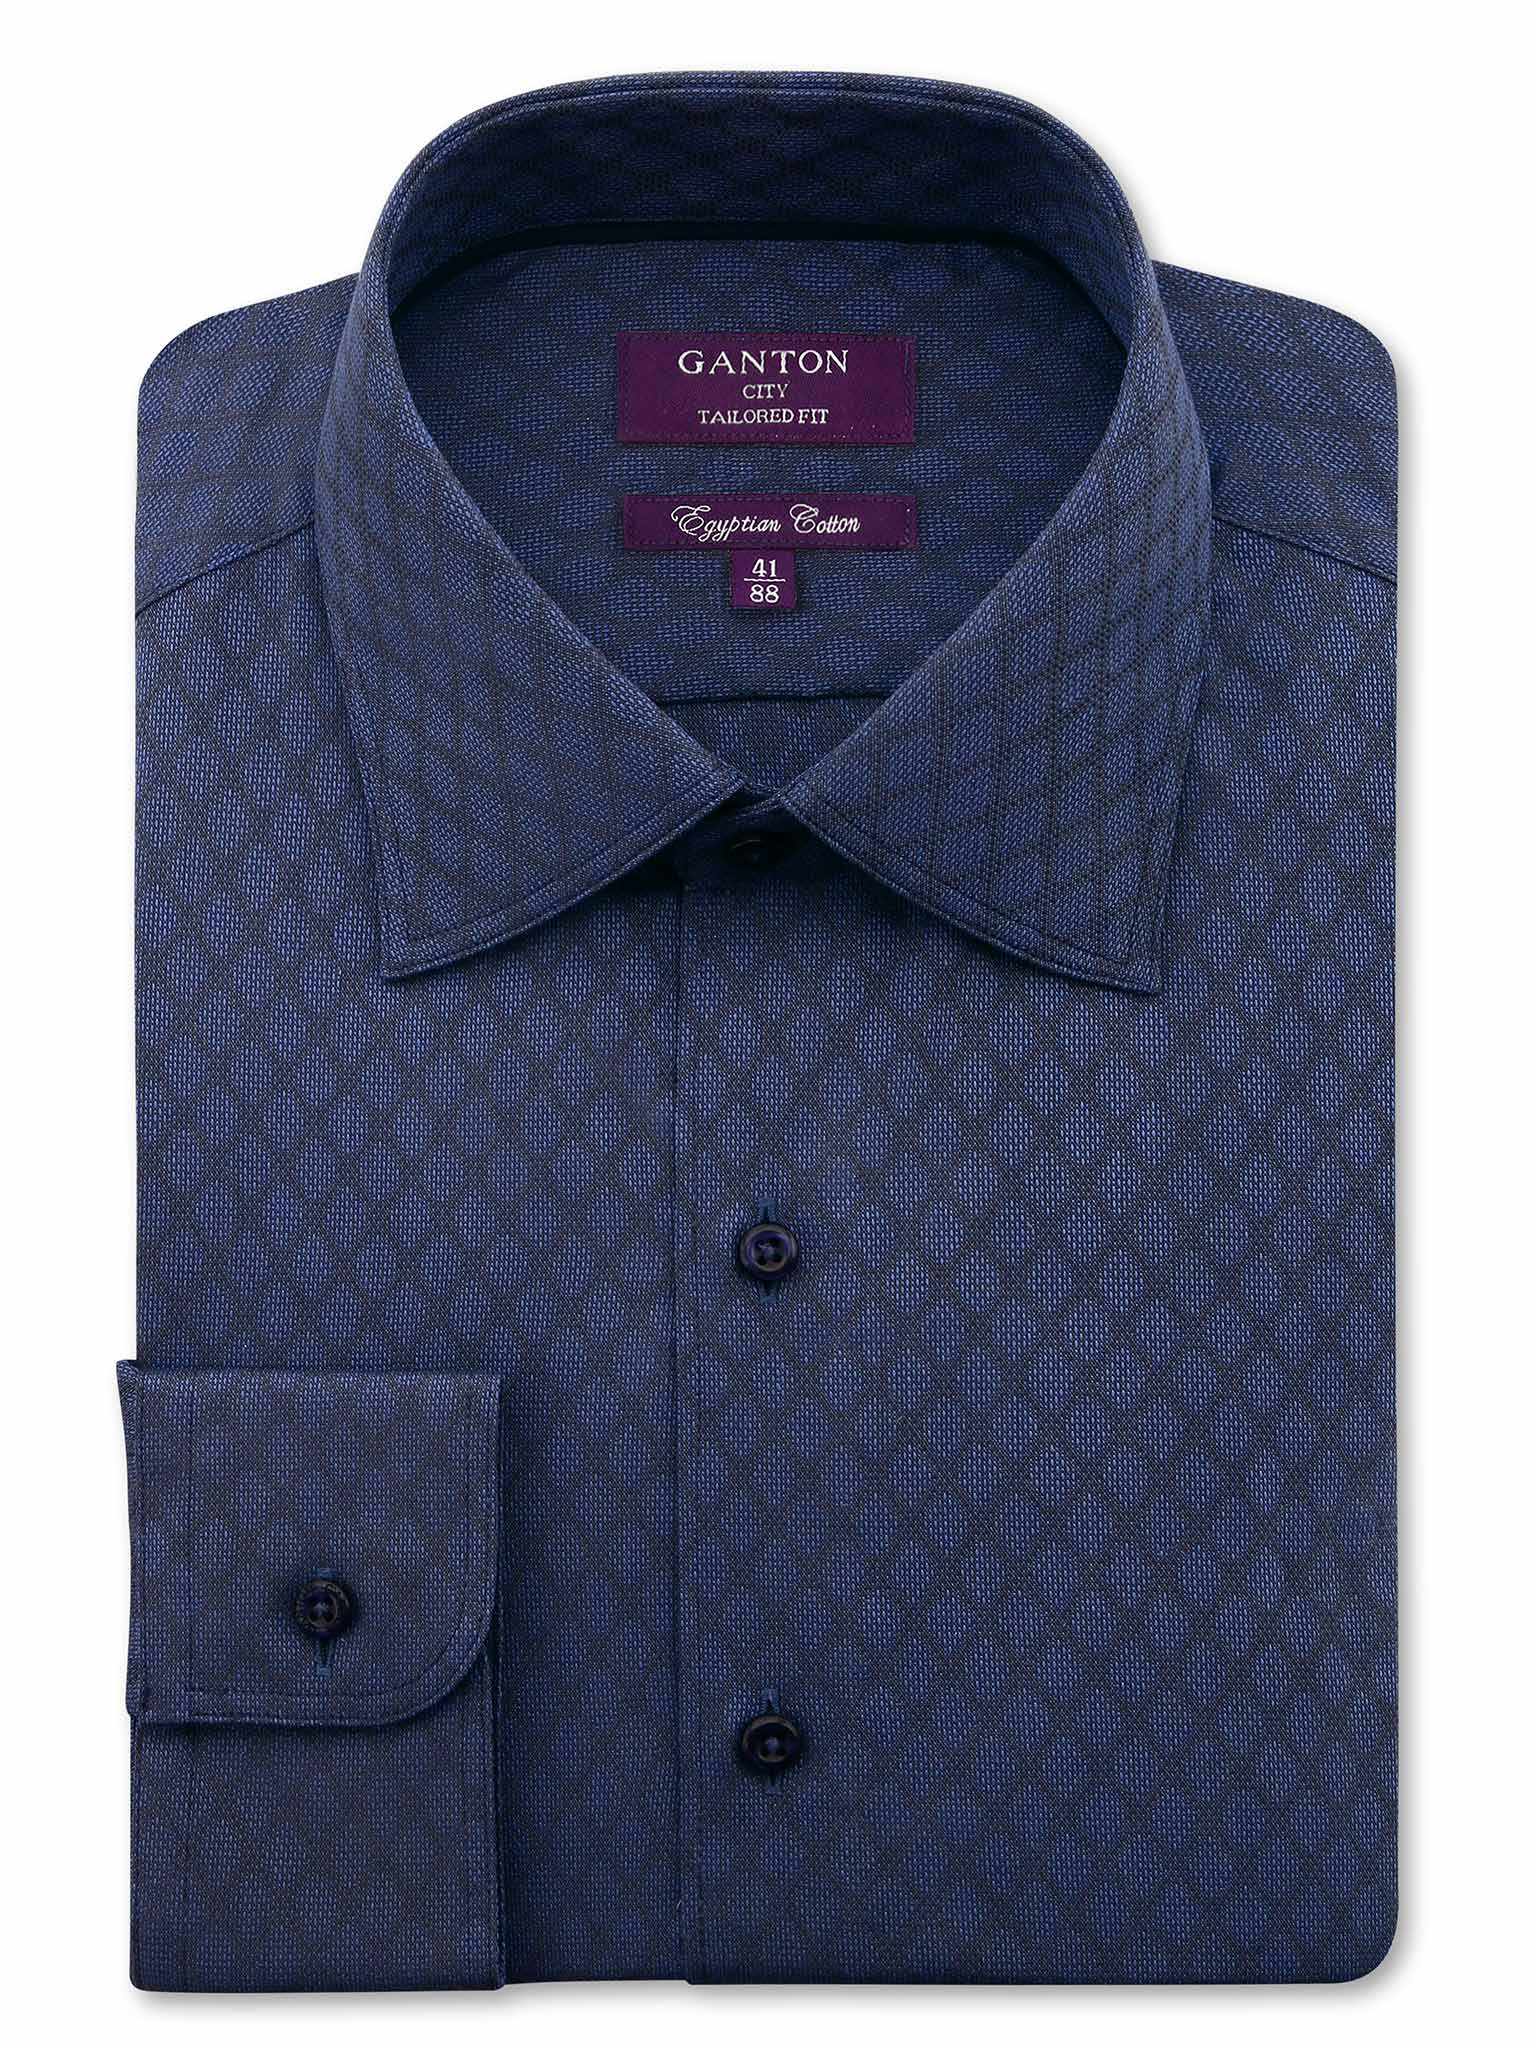 All Navy Tailored Fit Check Carson Egyptian Cotton Shirt